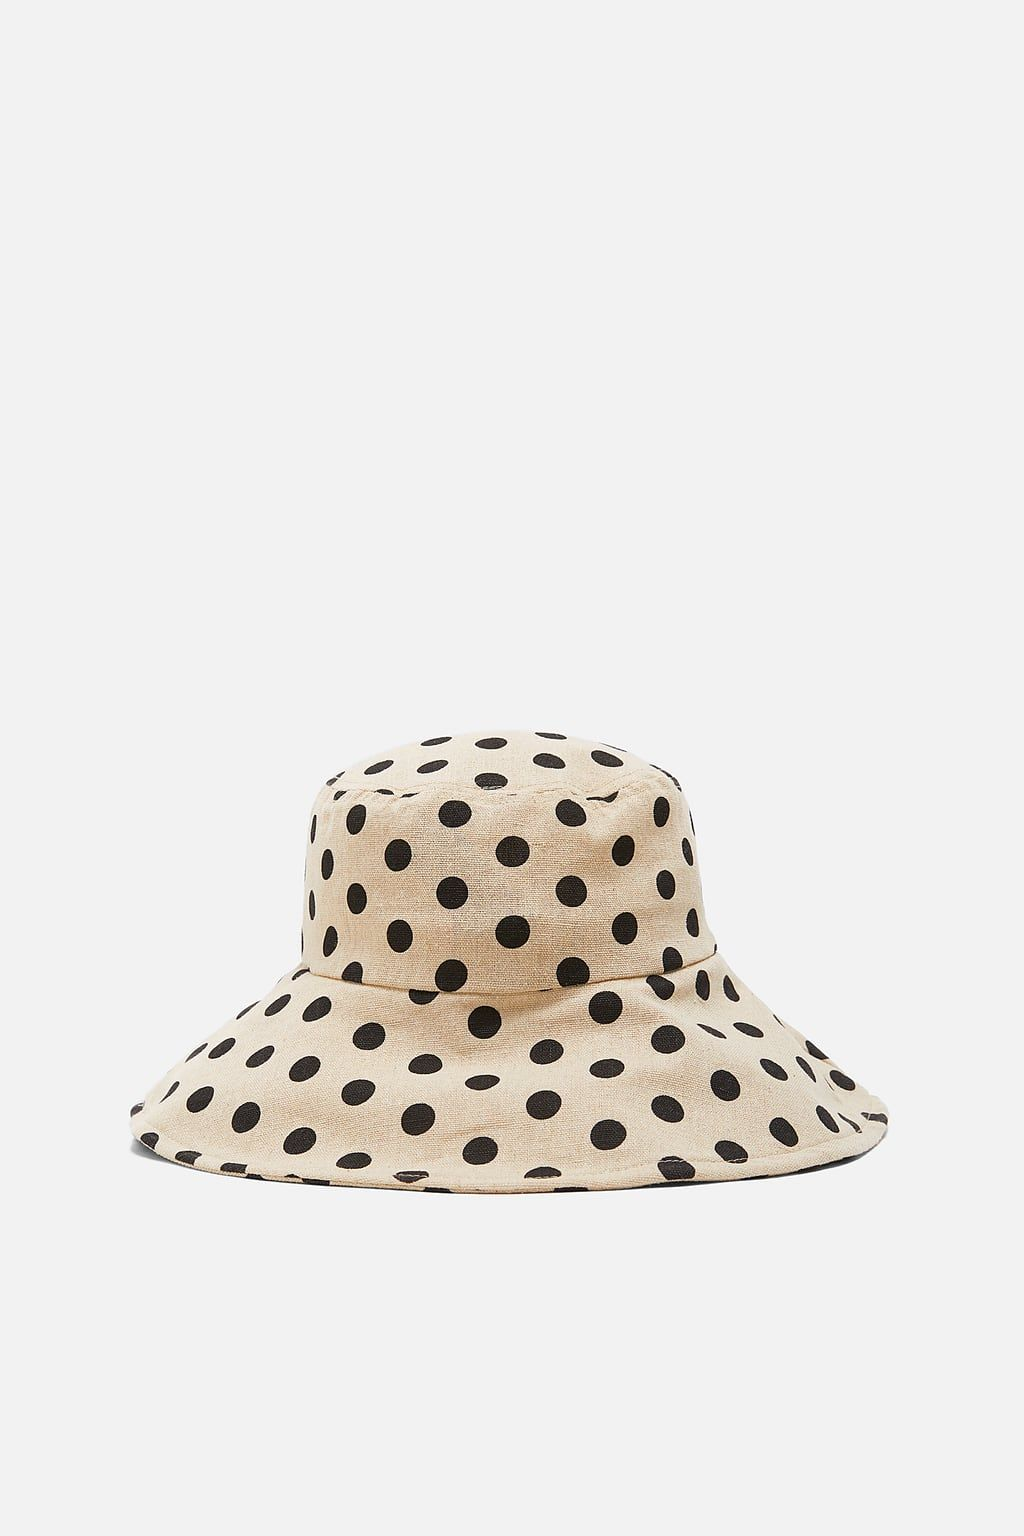 1e3b133c08a7b LIMITED EDITION POLKA DOT BUCKET HAT - NEW IN-WOMAN